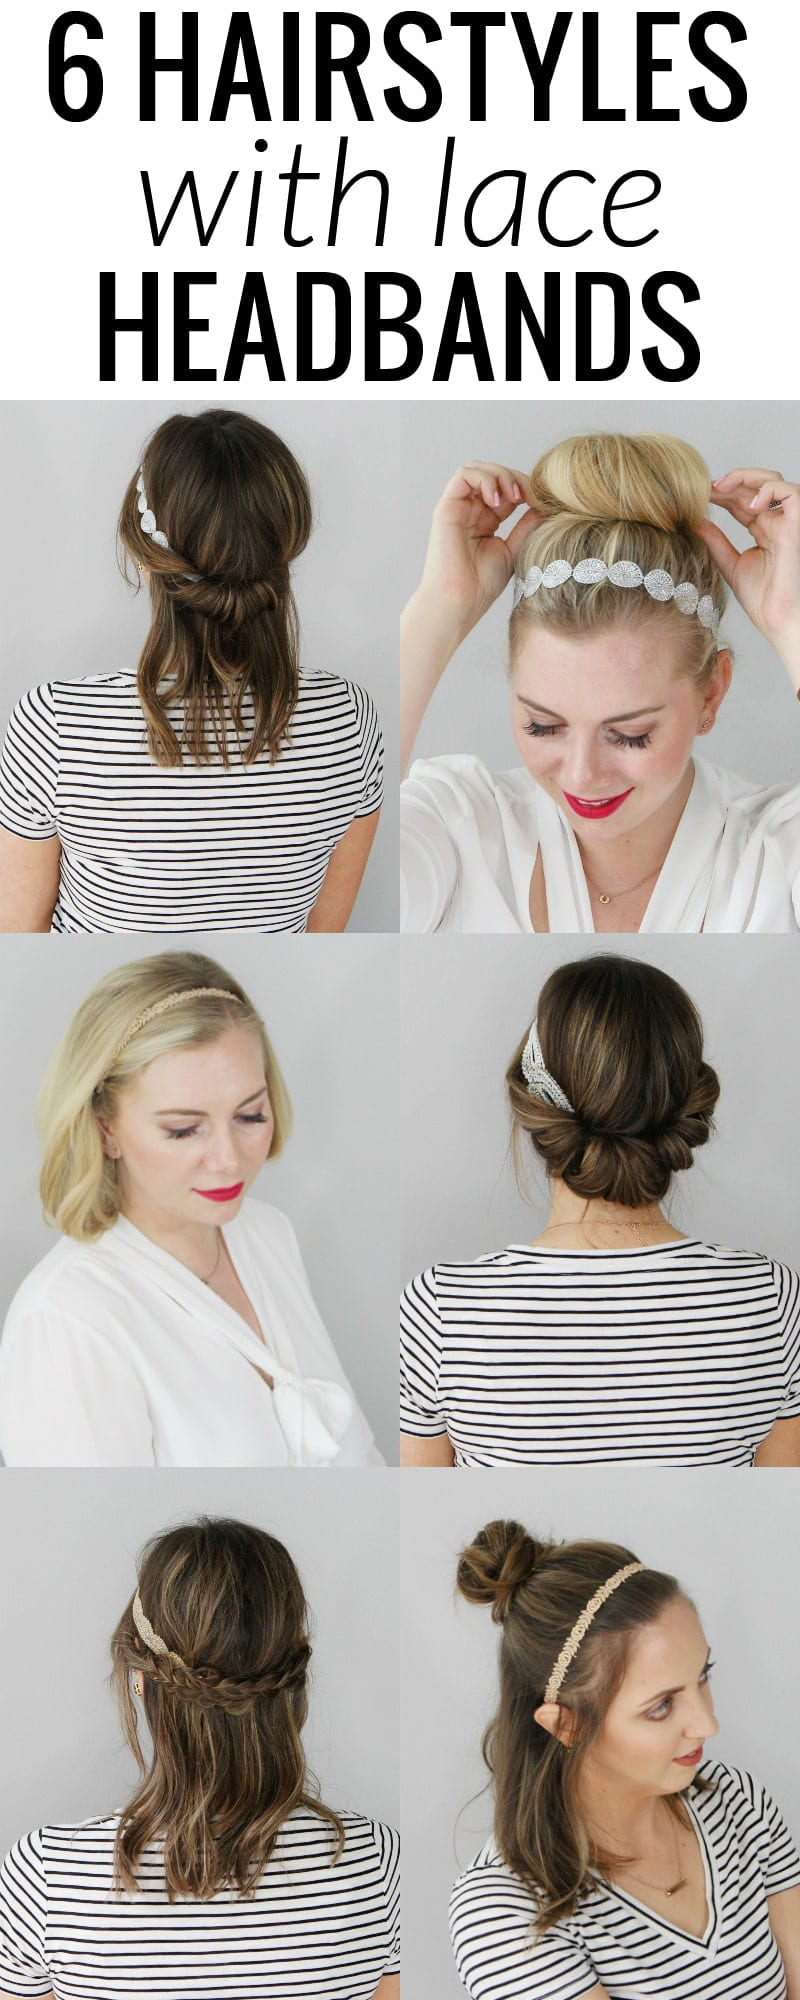 6 Hairstyles with Lace Headbands - each hairstyle is super chic and super easy to do! Click through to the short tutorials!